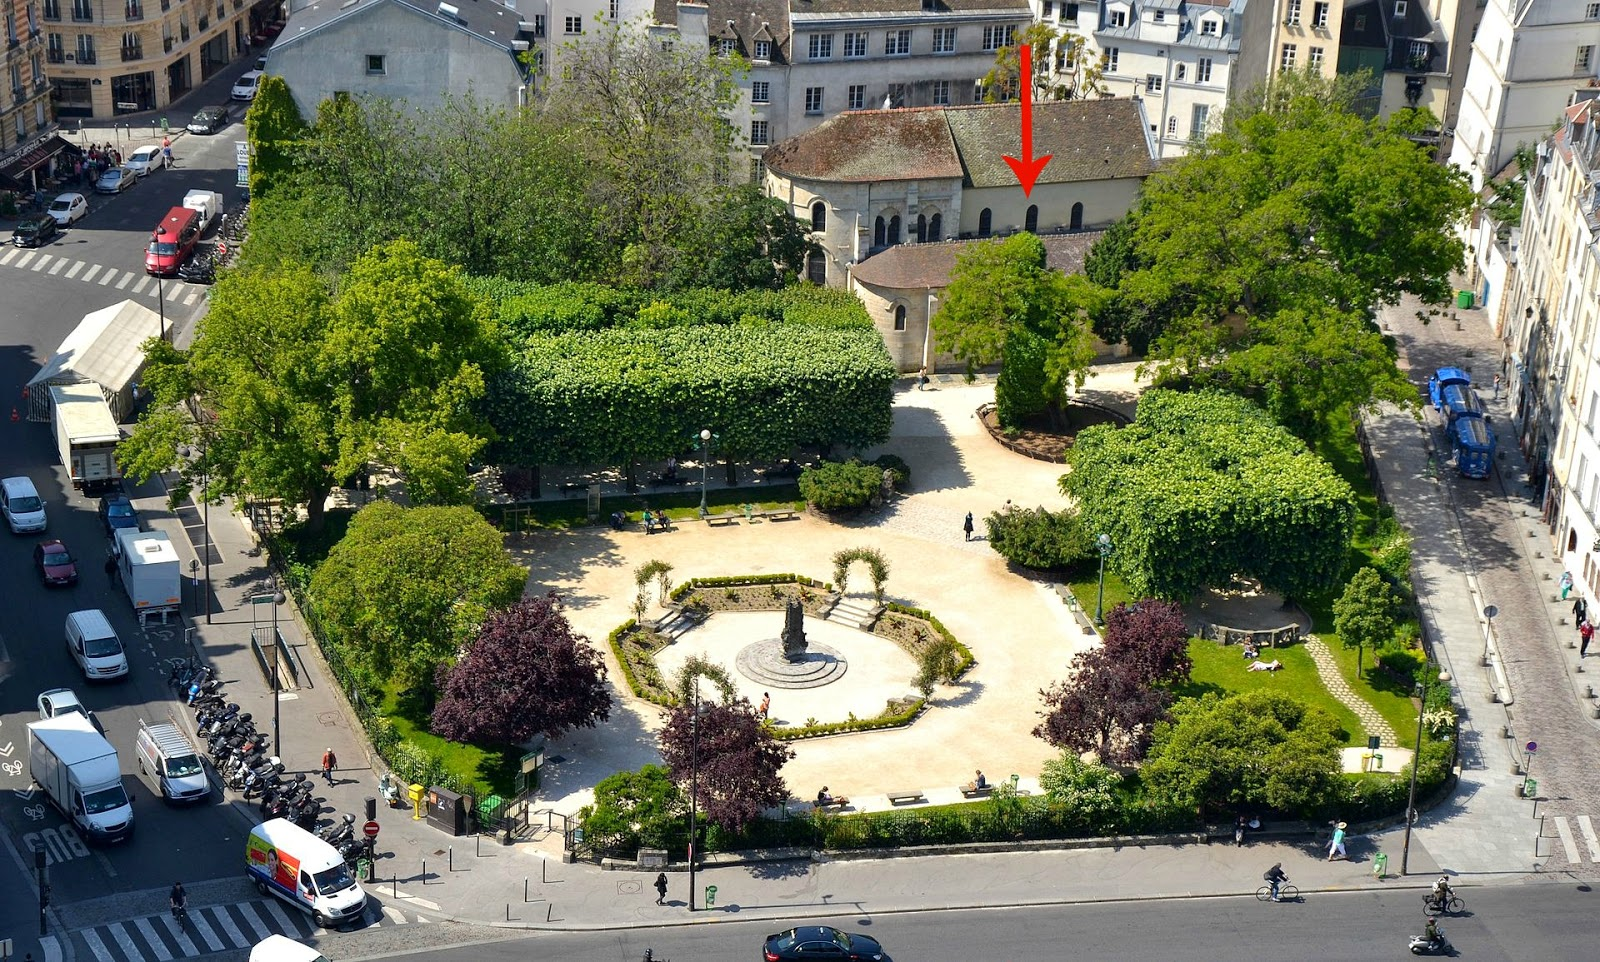 Square René Viviani in Paris, locust tree marked with red arrow